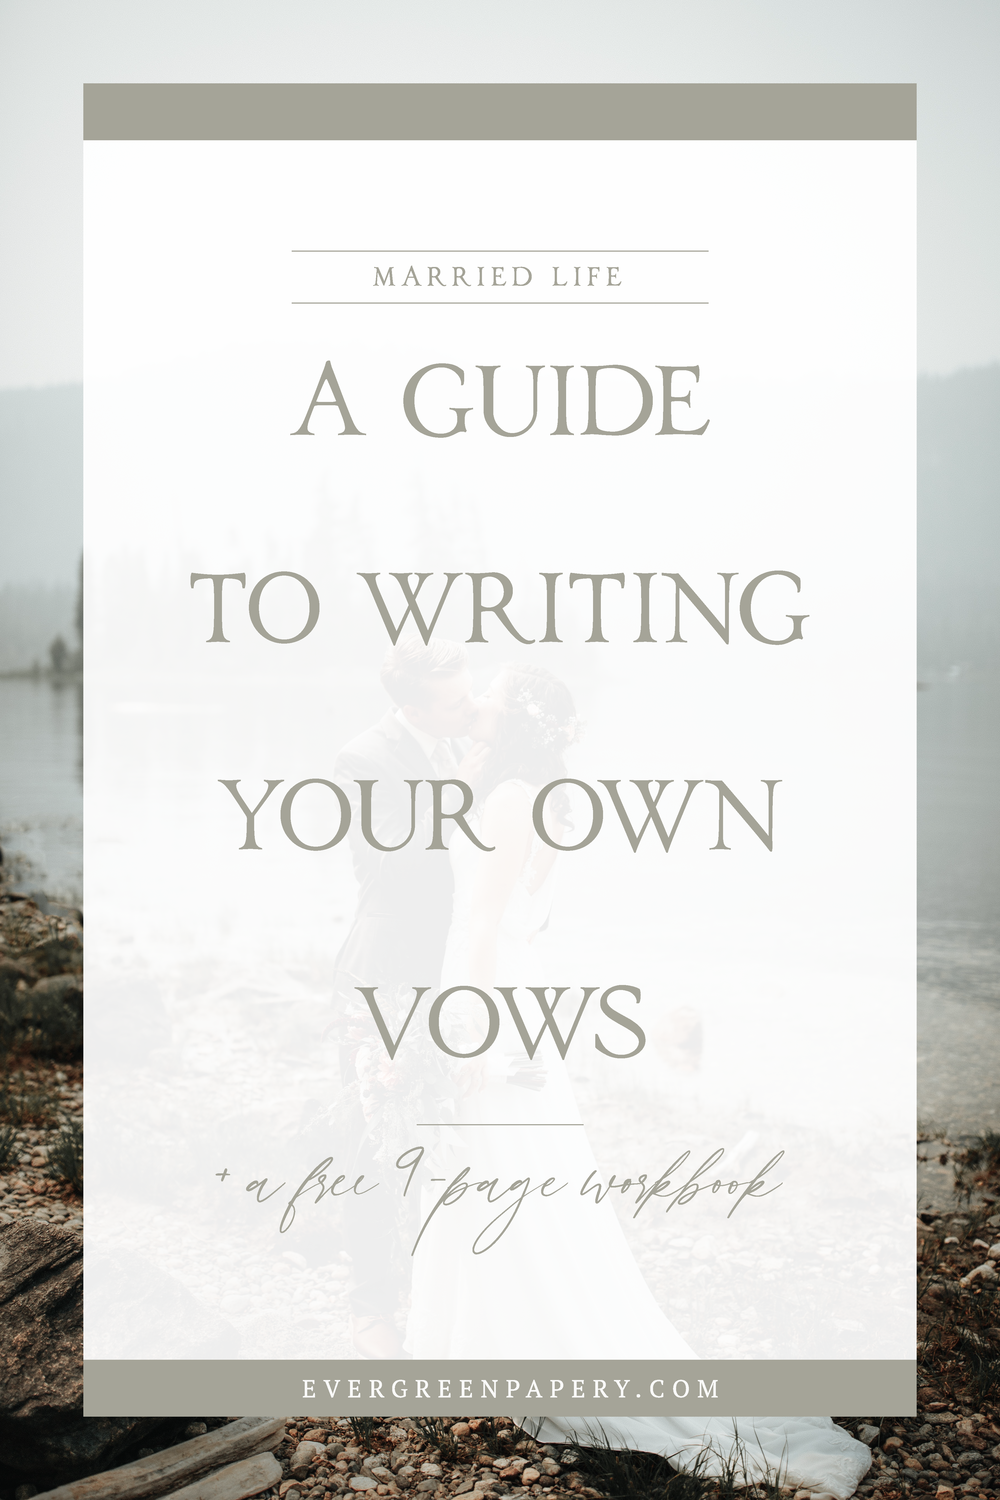 There is no better way to personalize your wedding ceremony than to write your own wedding vows. It's an opportunity to lay the building blocks of your marriage, share your love story with your guests, and exchange meaningful words with your other half. To help you conquer this task, I am sharing with you my top 9 tips to writing your own wedding vows plus a free workbook! - Evergreen Papery